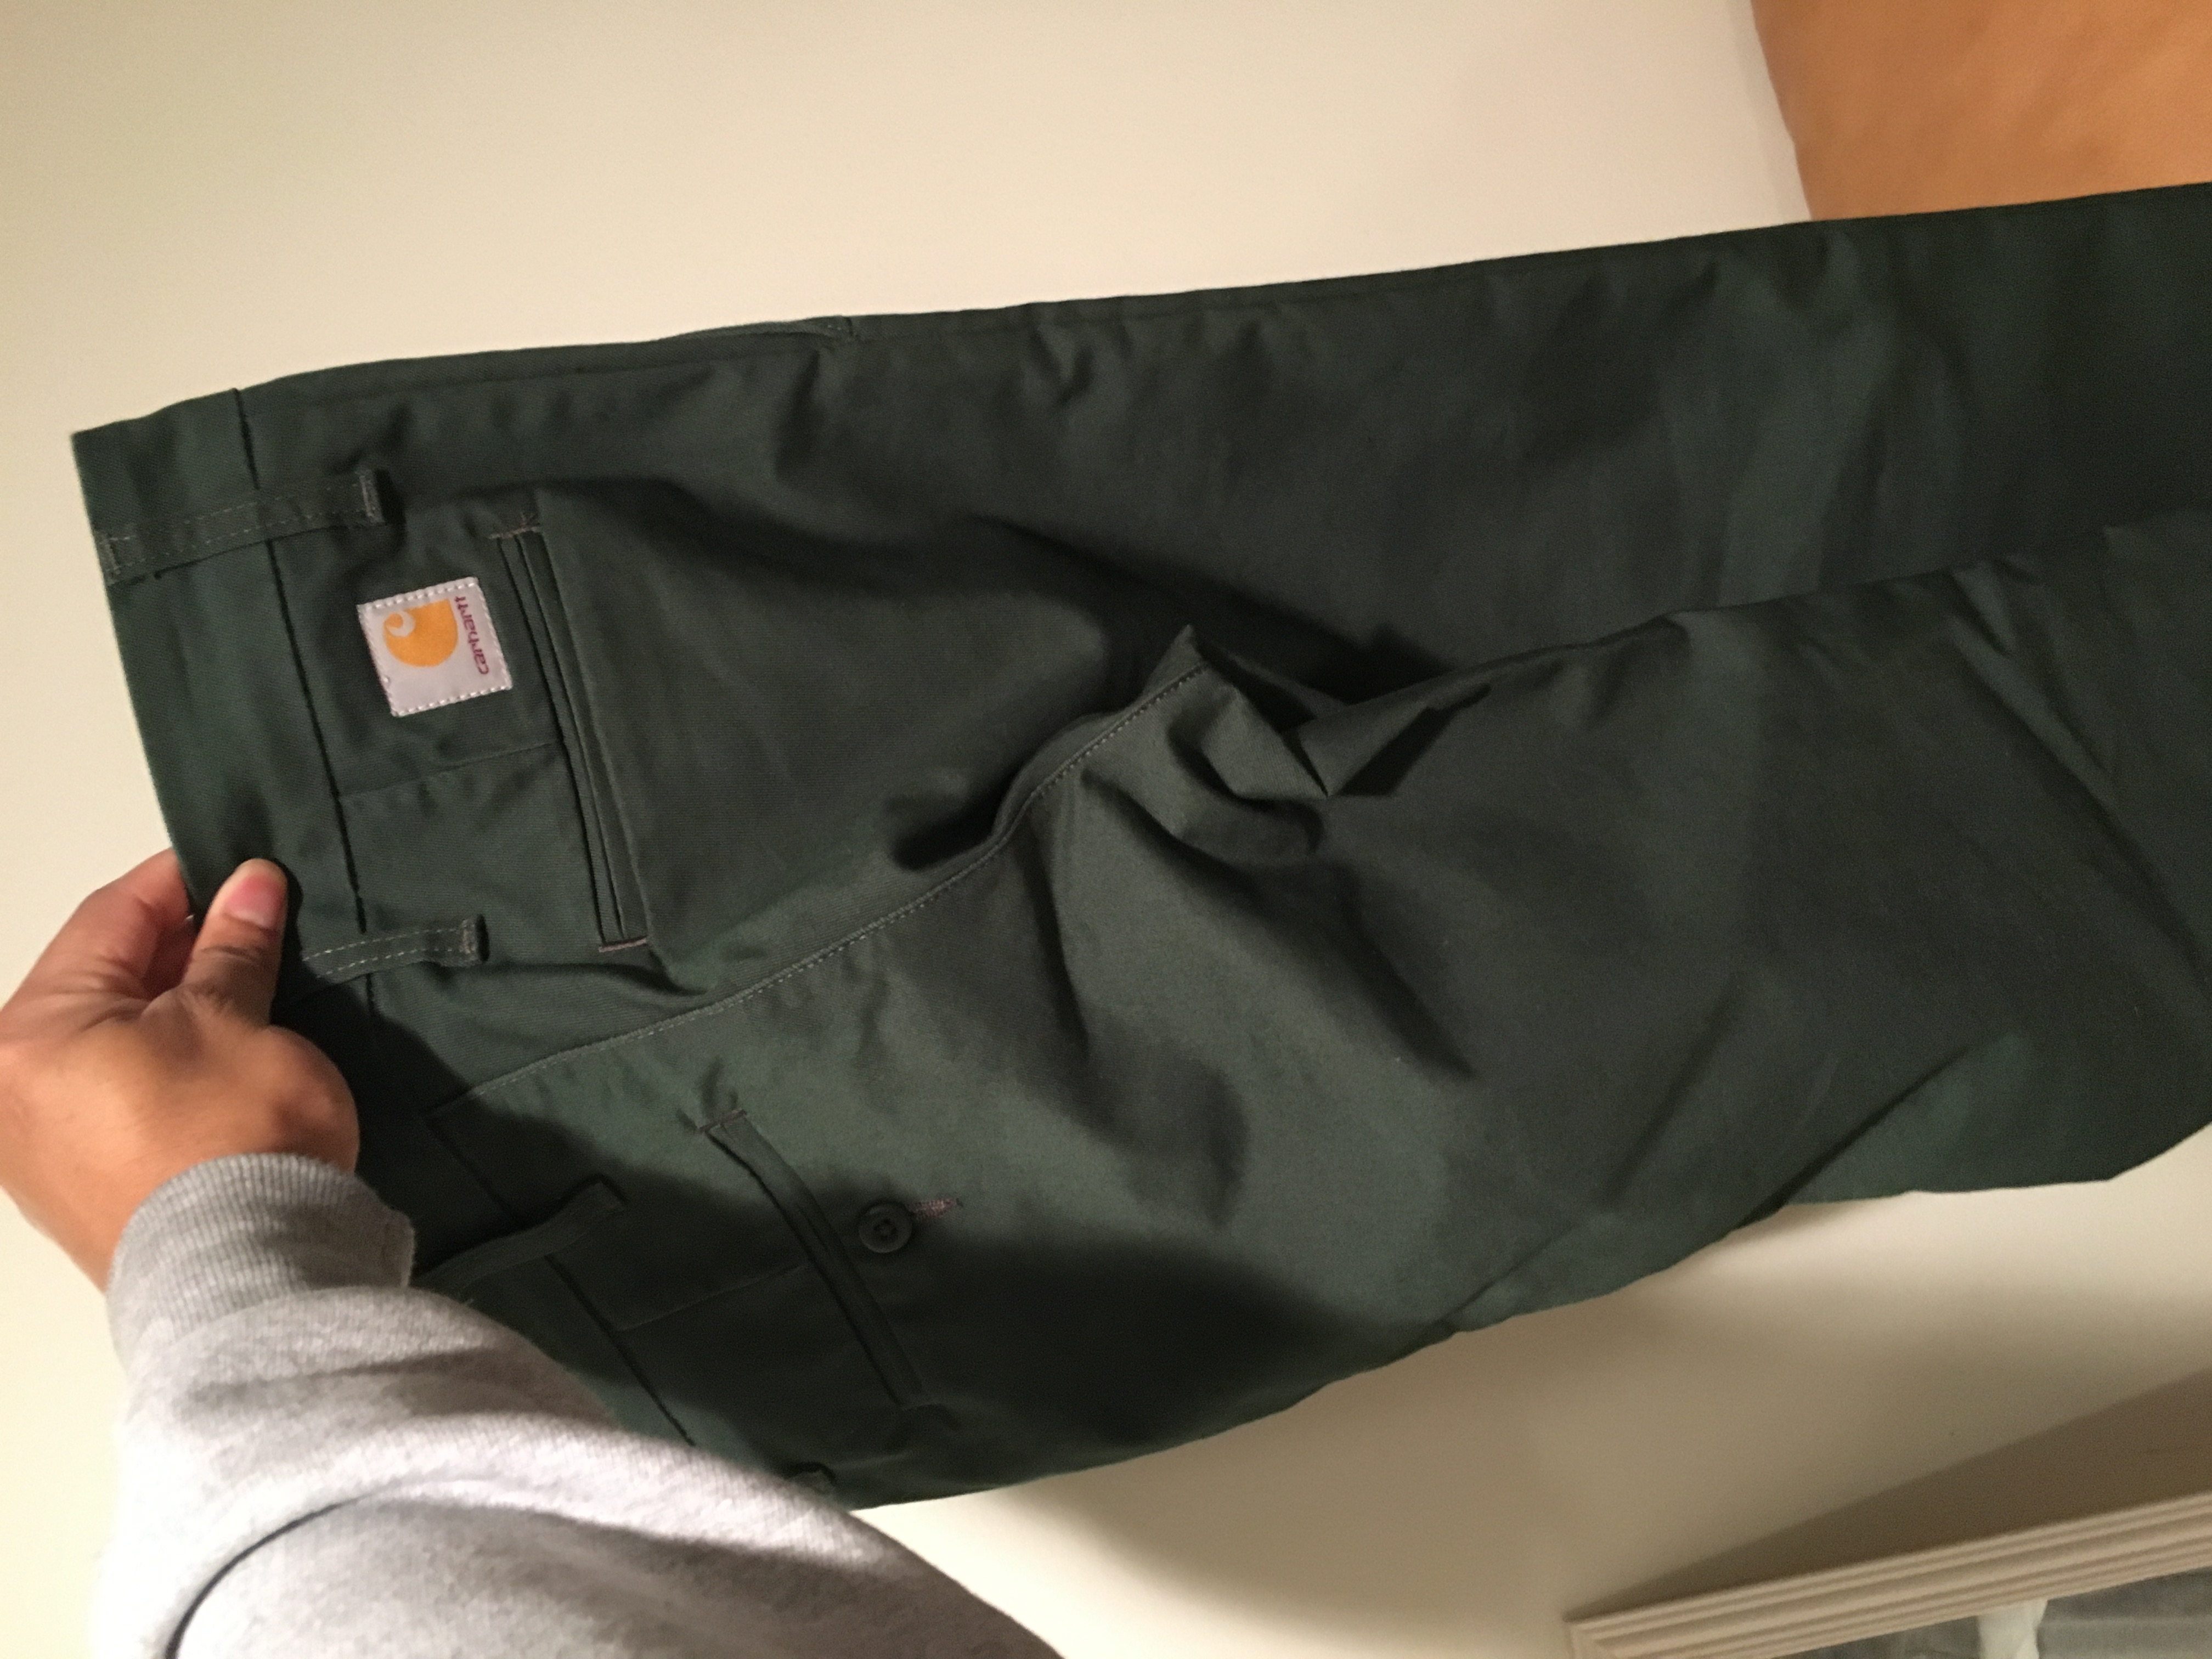 d22198ef82c Carhartt Wip Sid Pants Size 28 - Casual Pants for Sale - Grailed